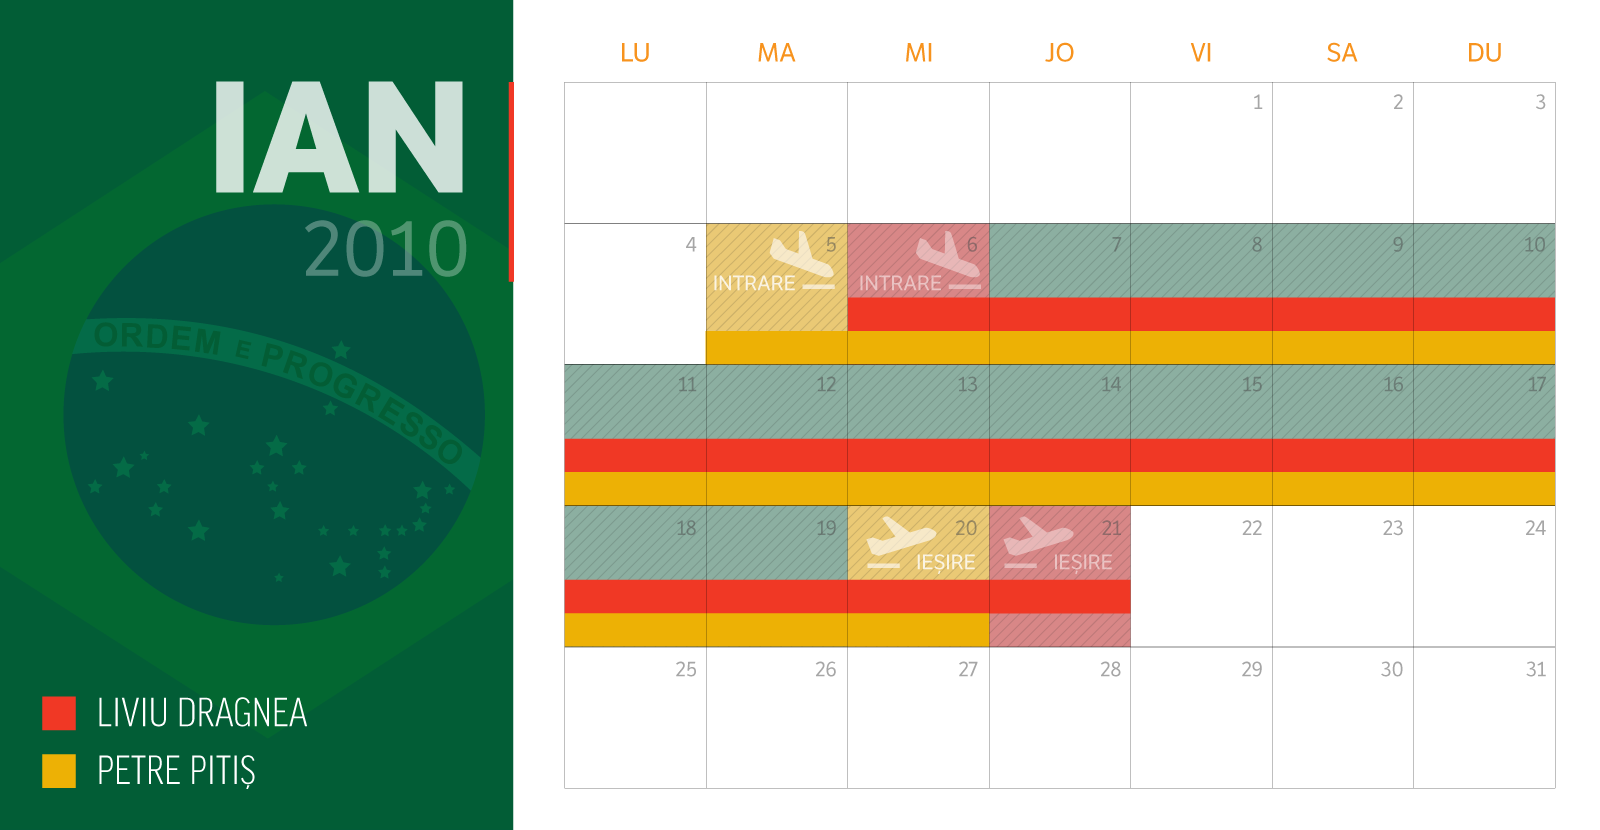 calendar_calatorii_brazilia_dragnea_teldrum_03_Ian_2010